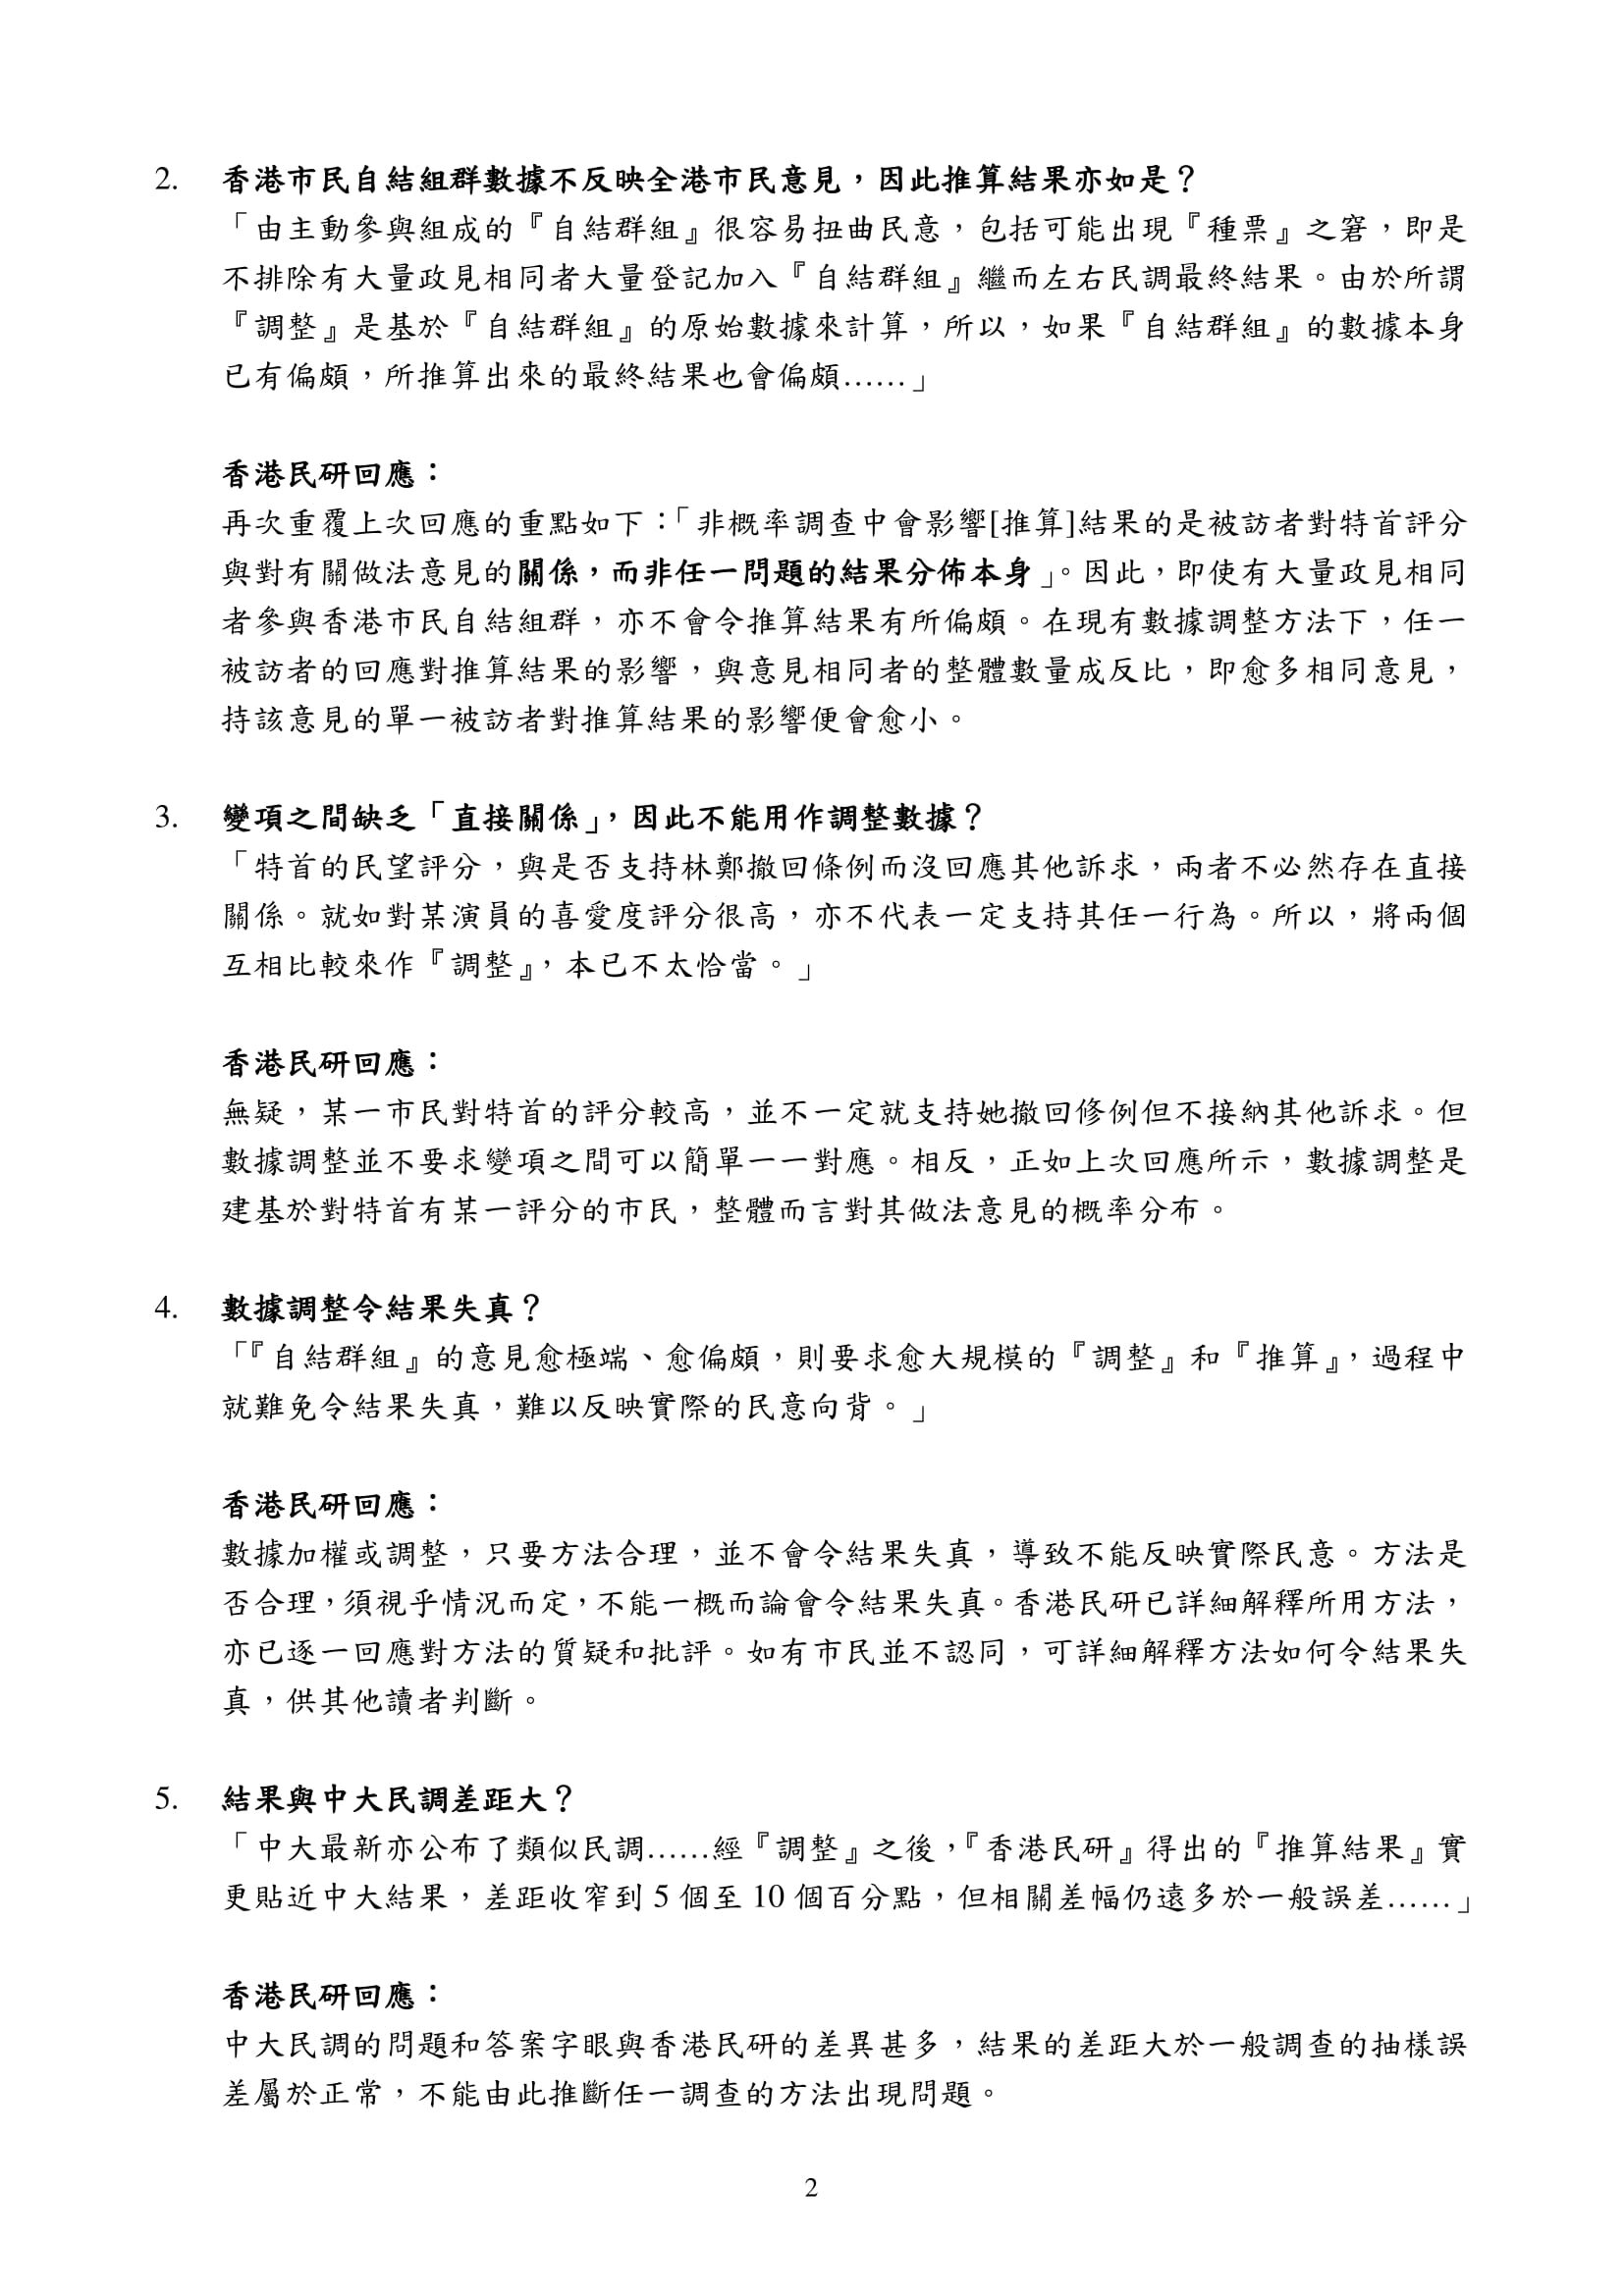 sp_rpt_2019sep10_CE_reply2nd_v1_clean-page-002.jpg